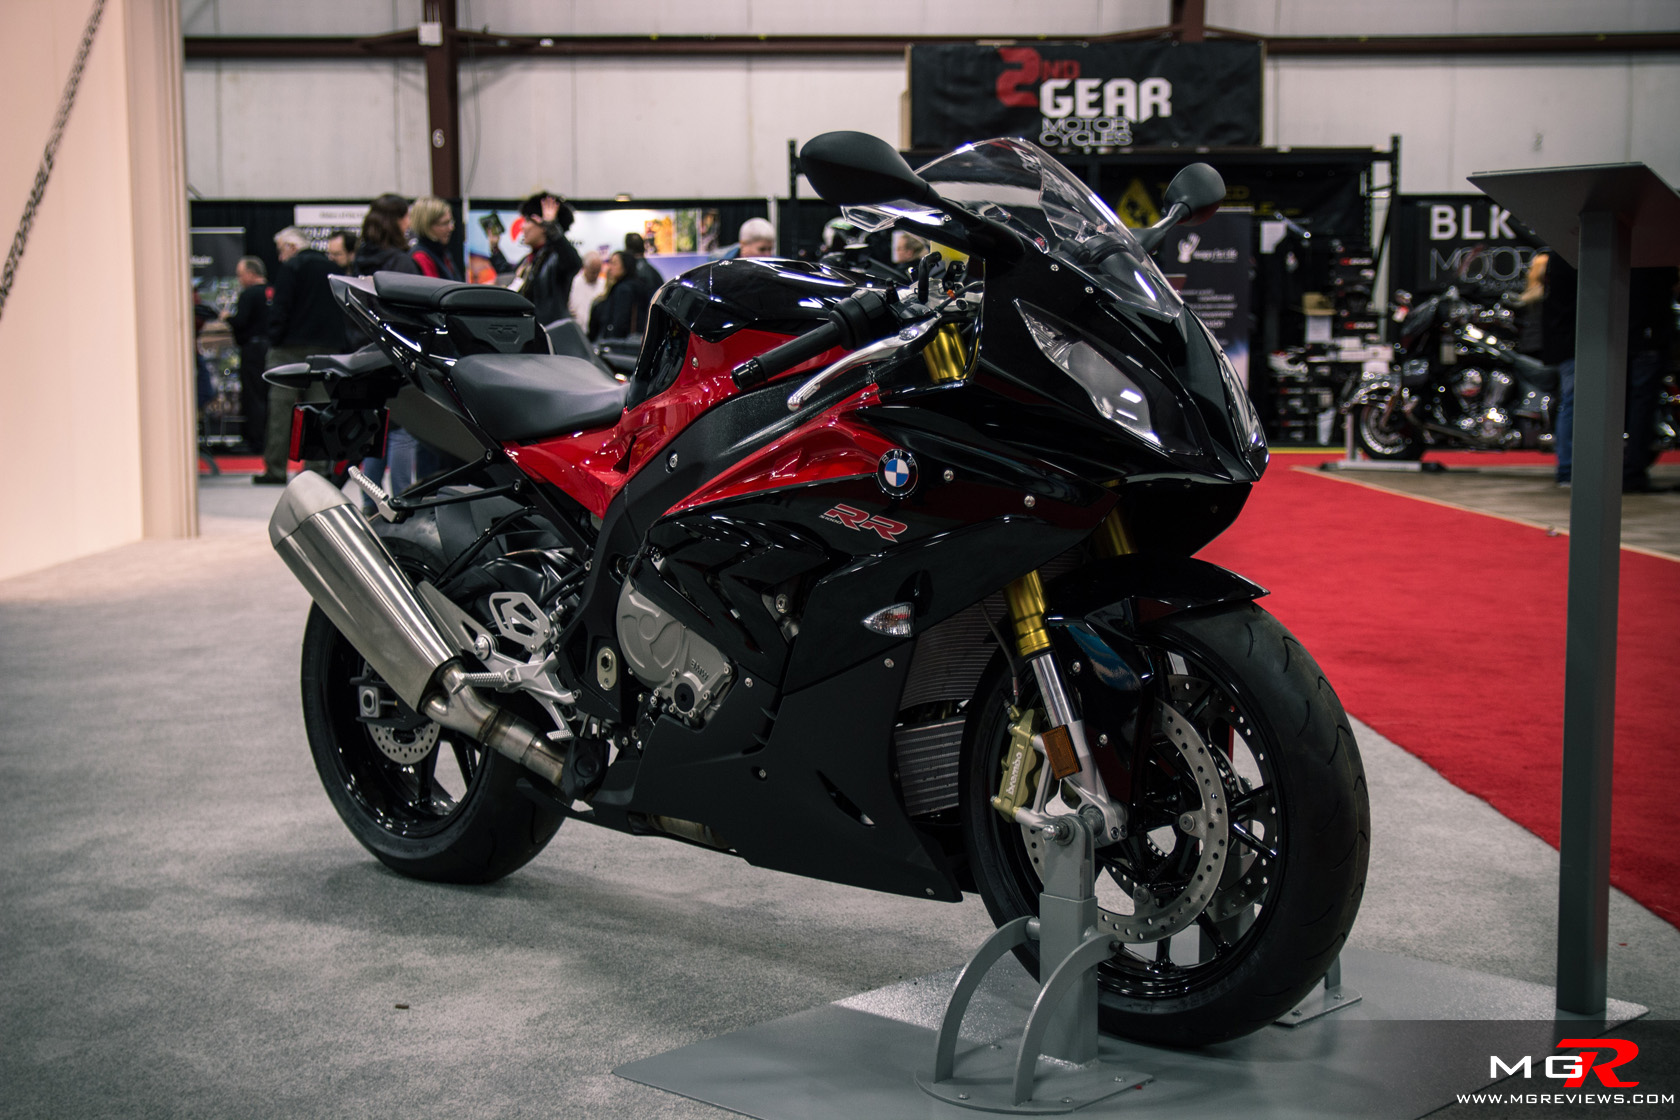 Photos: 2016 Vancouver Motorcycle Show – M.G.Reviews